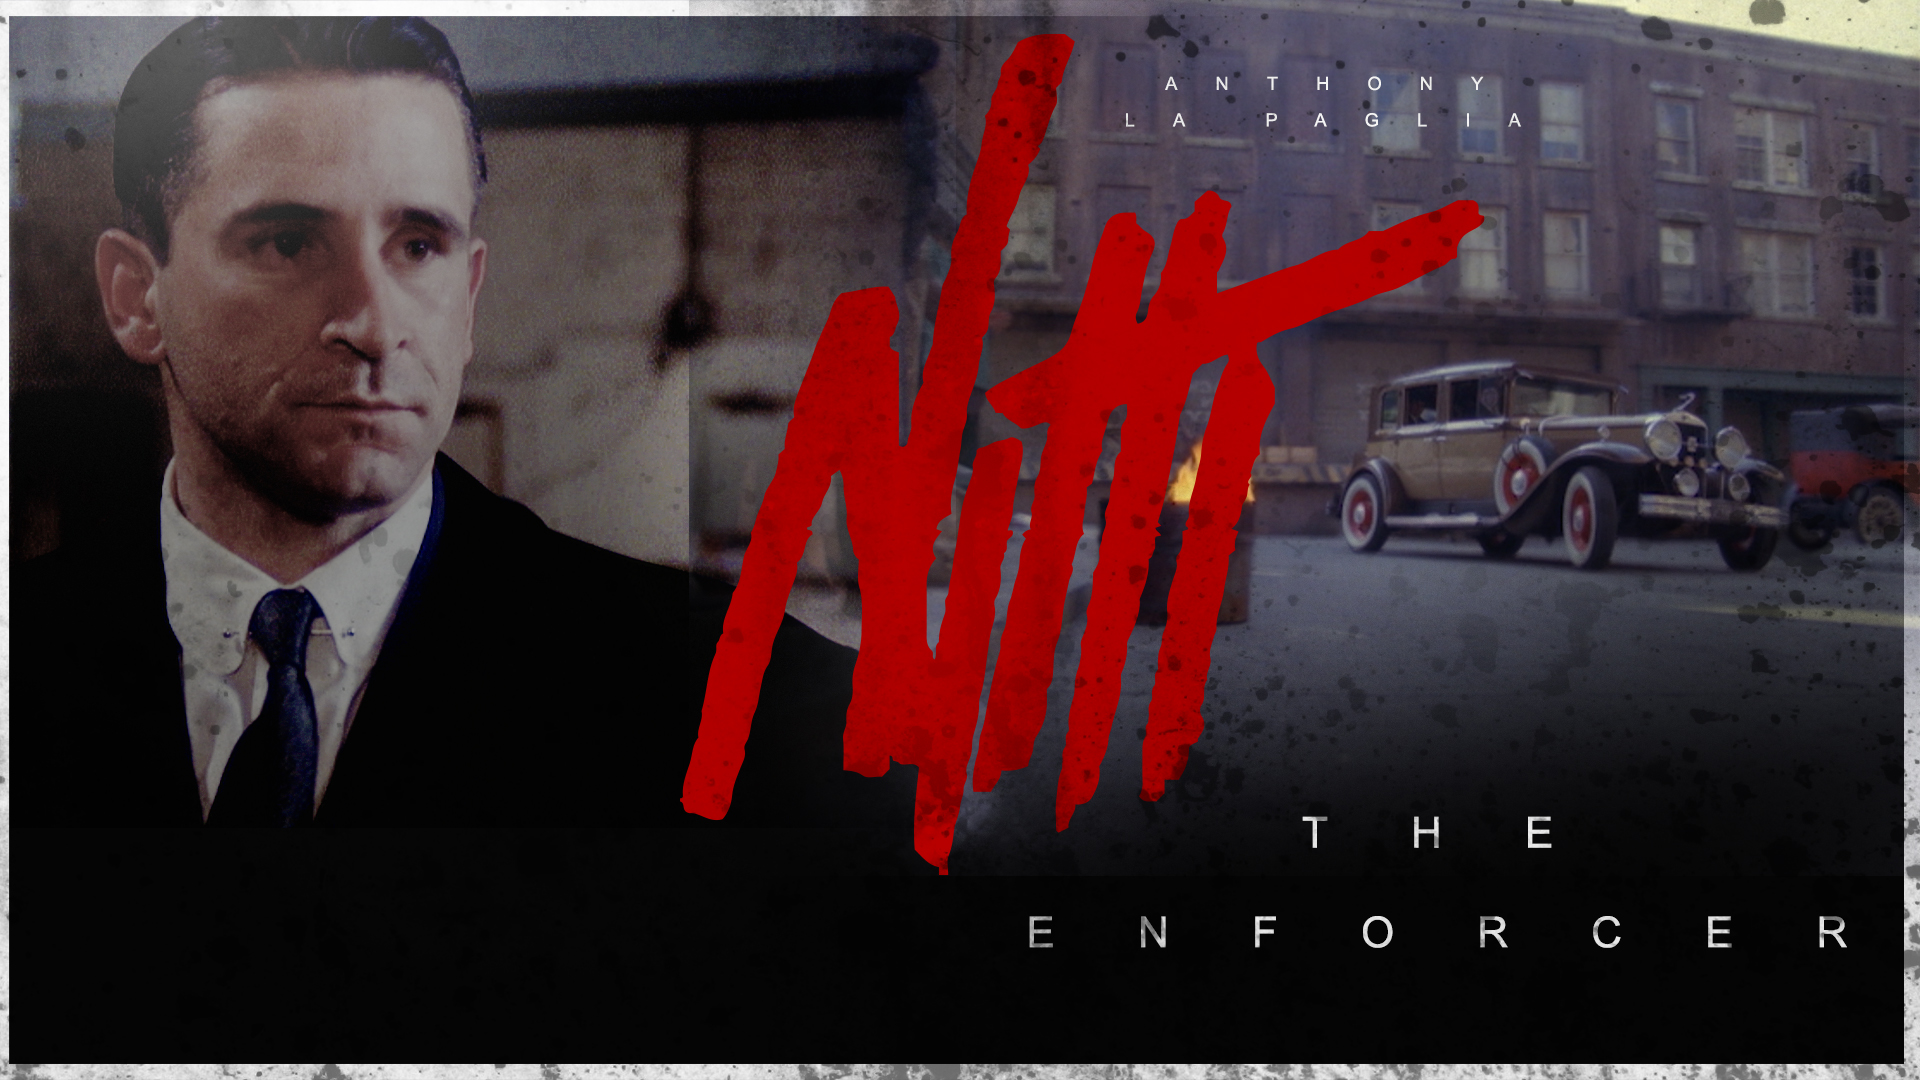 Nitti: The Enforcer